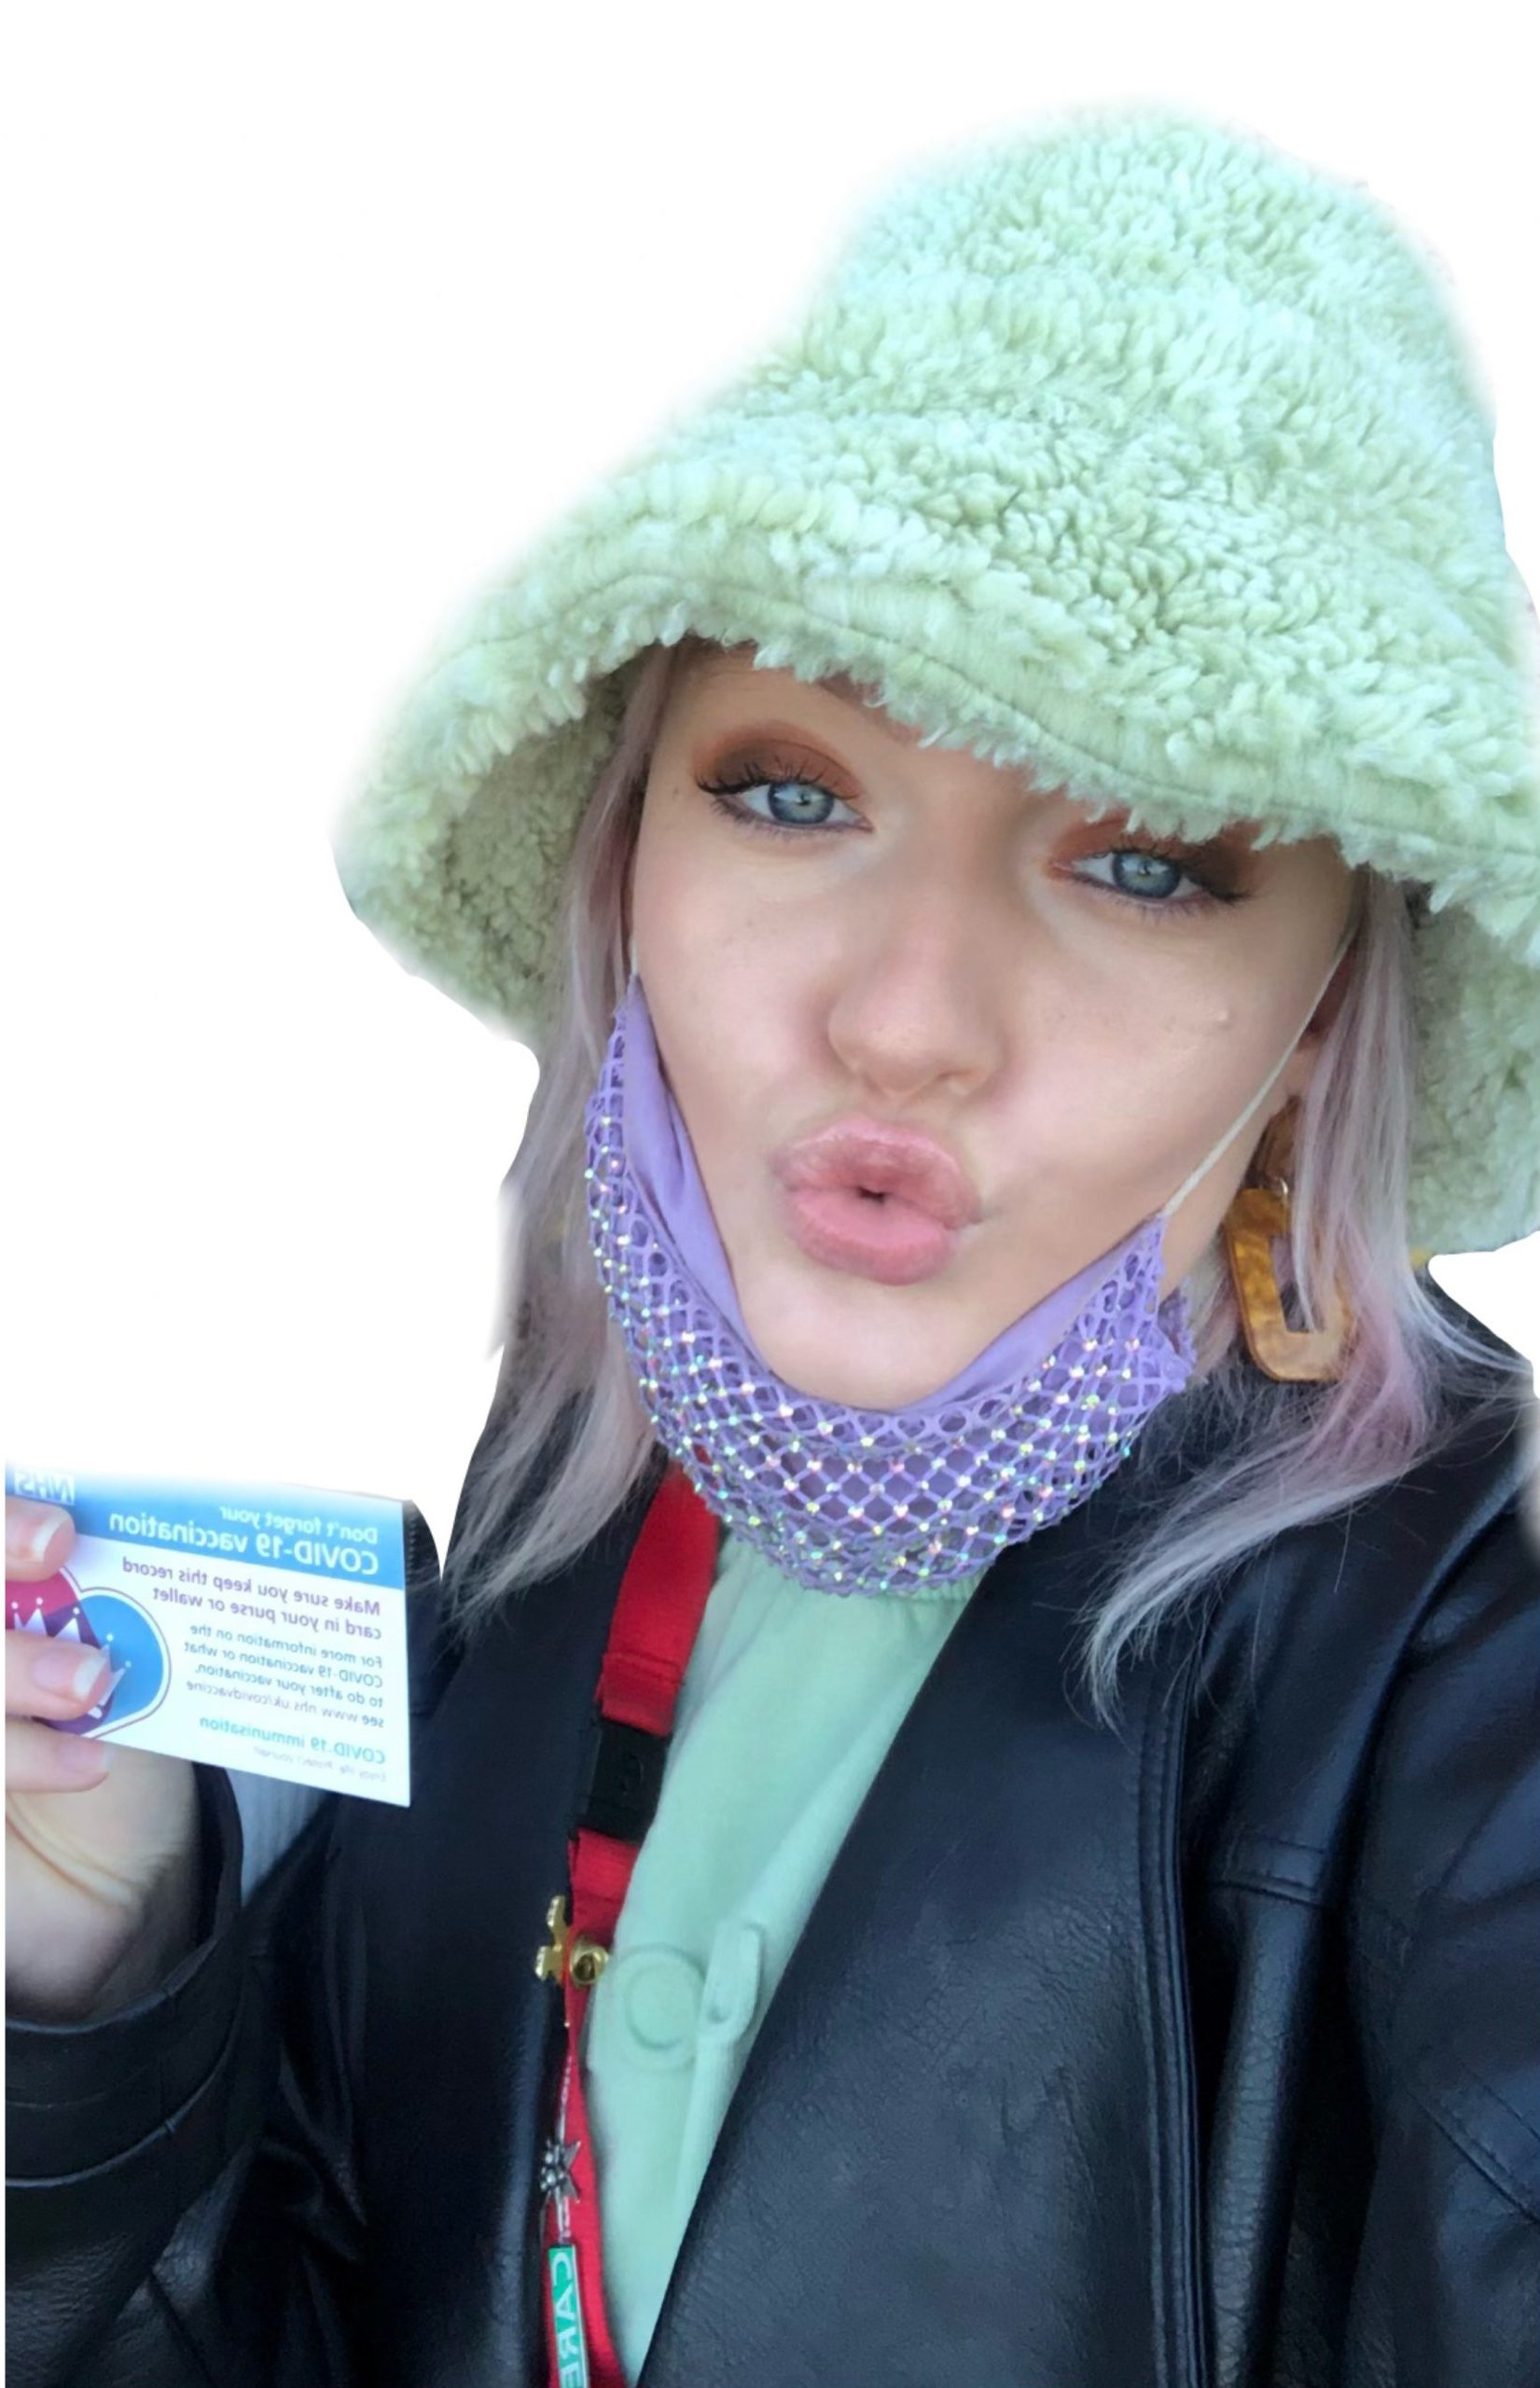 Holding the covid-19 vaccine card after receiving the vaccine